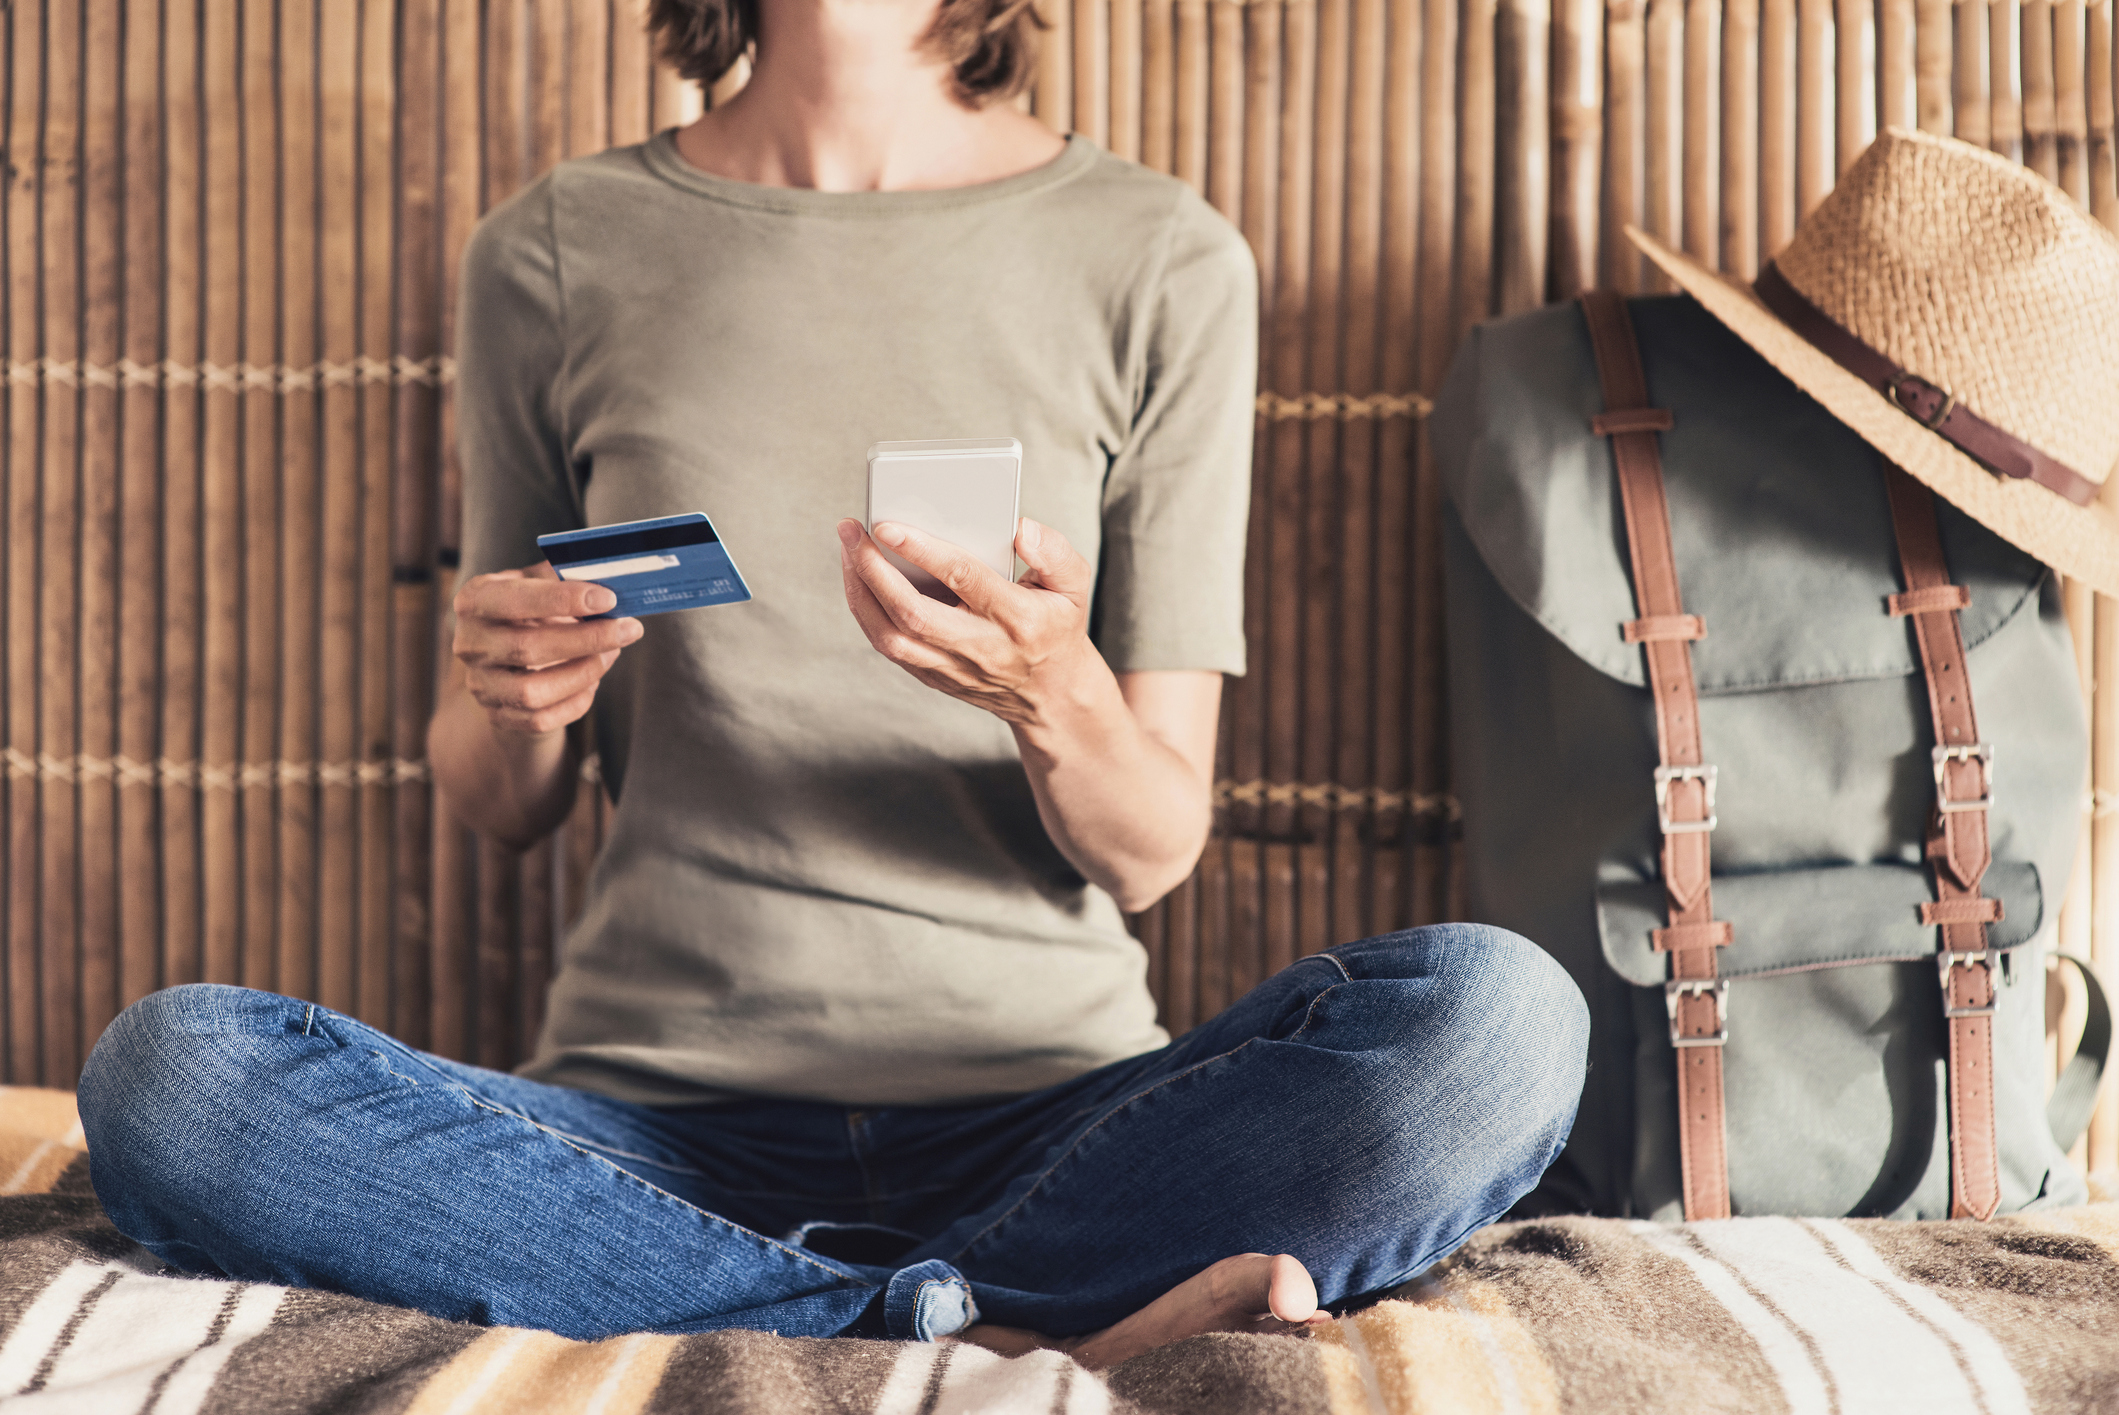 A woman sitting on the floor next to a backpack holding a phone and a credit card.